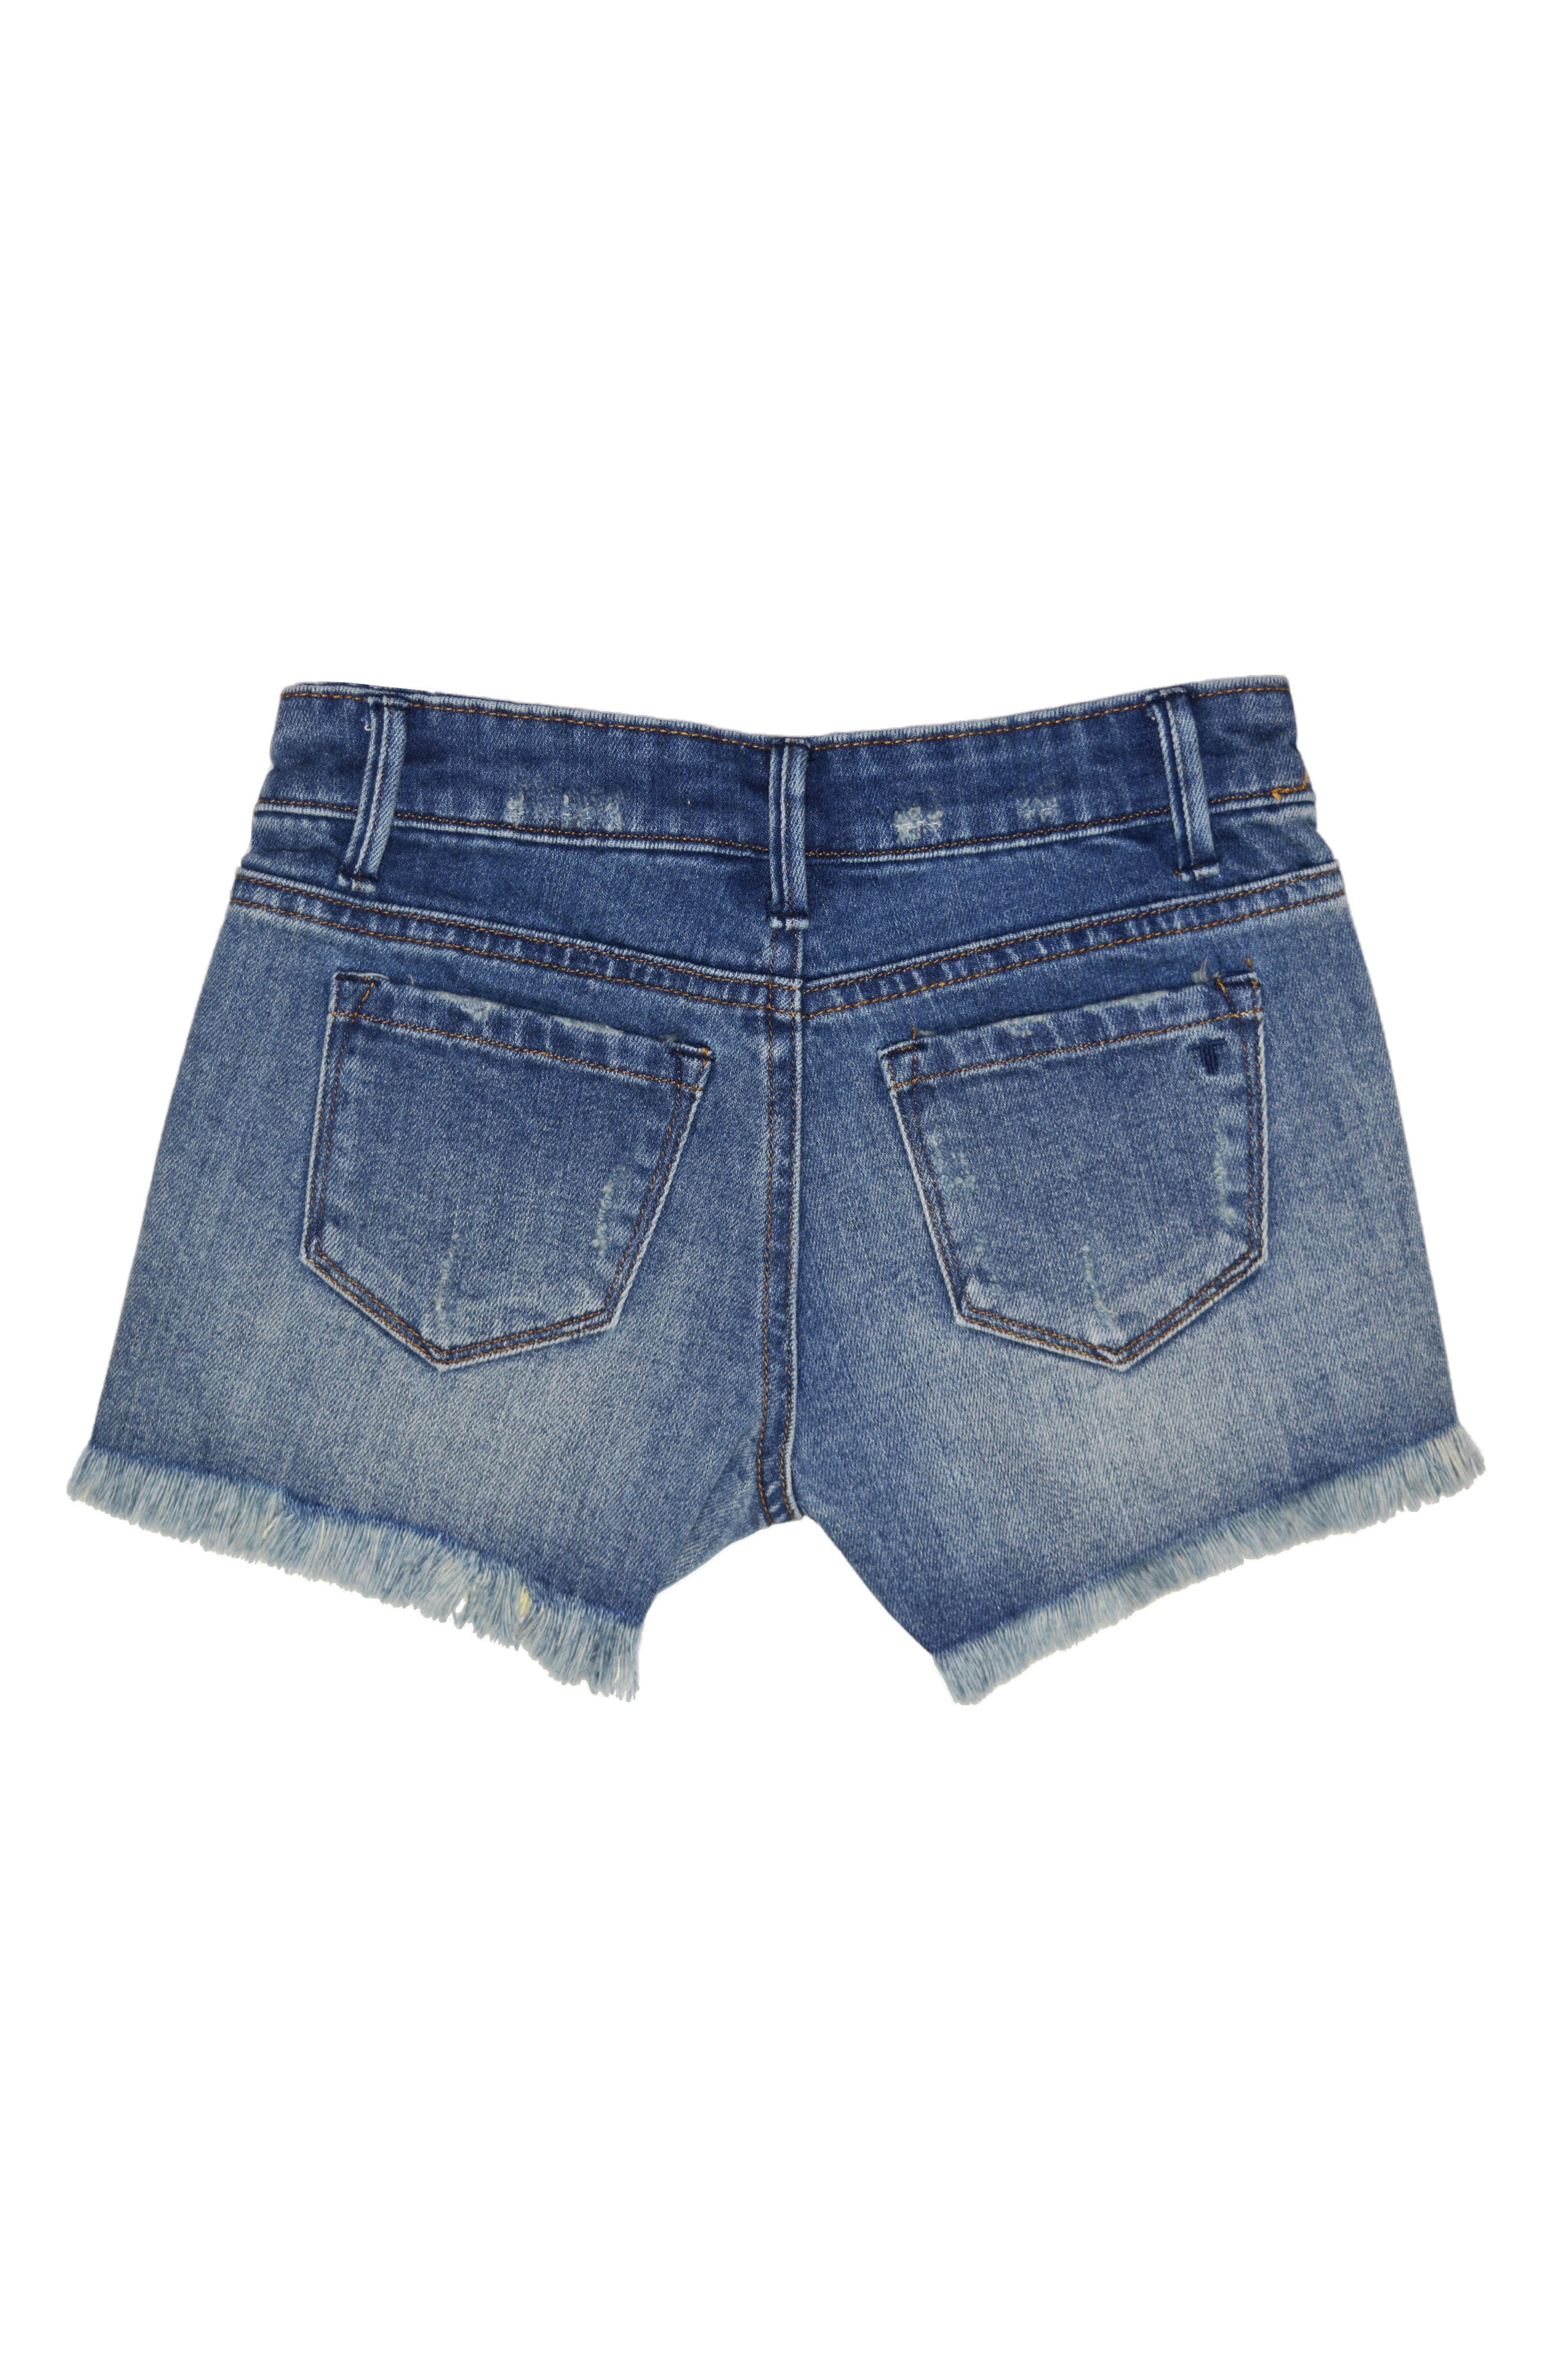 Beaded Distressed Denim Shorts,                             Alternate thumbnail 2, color,